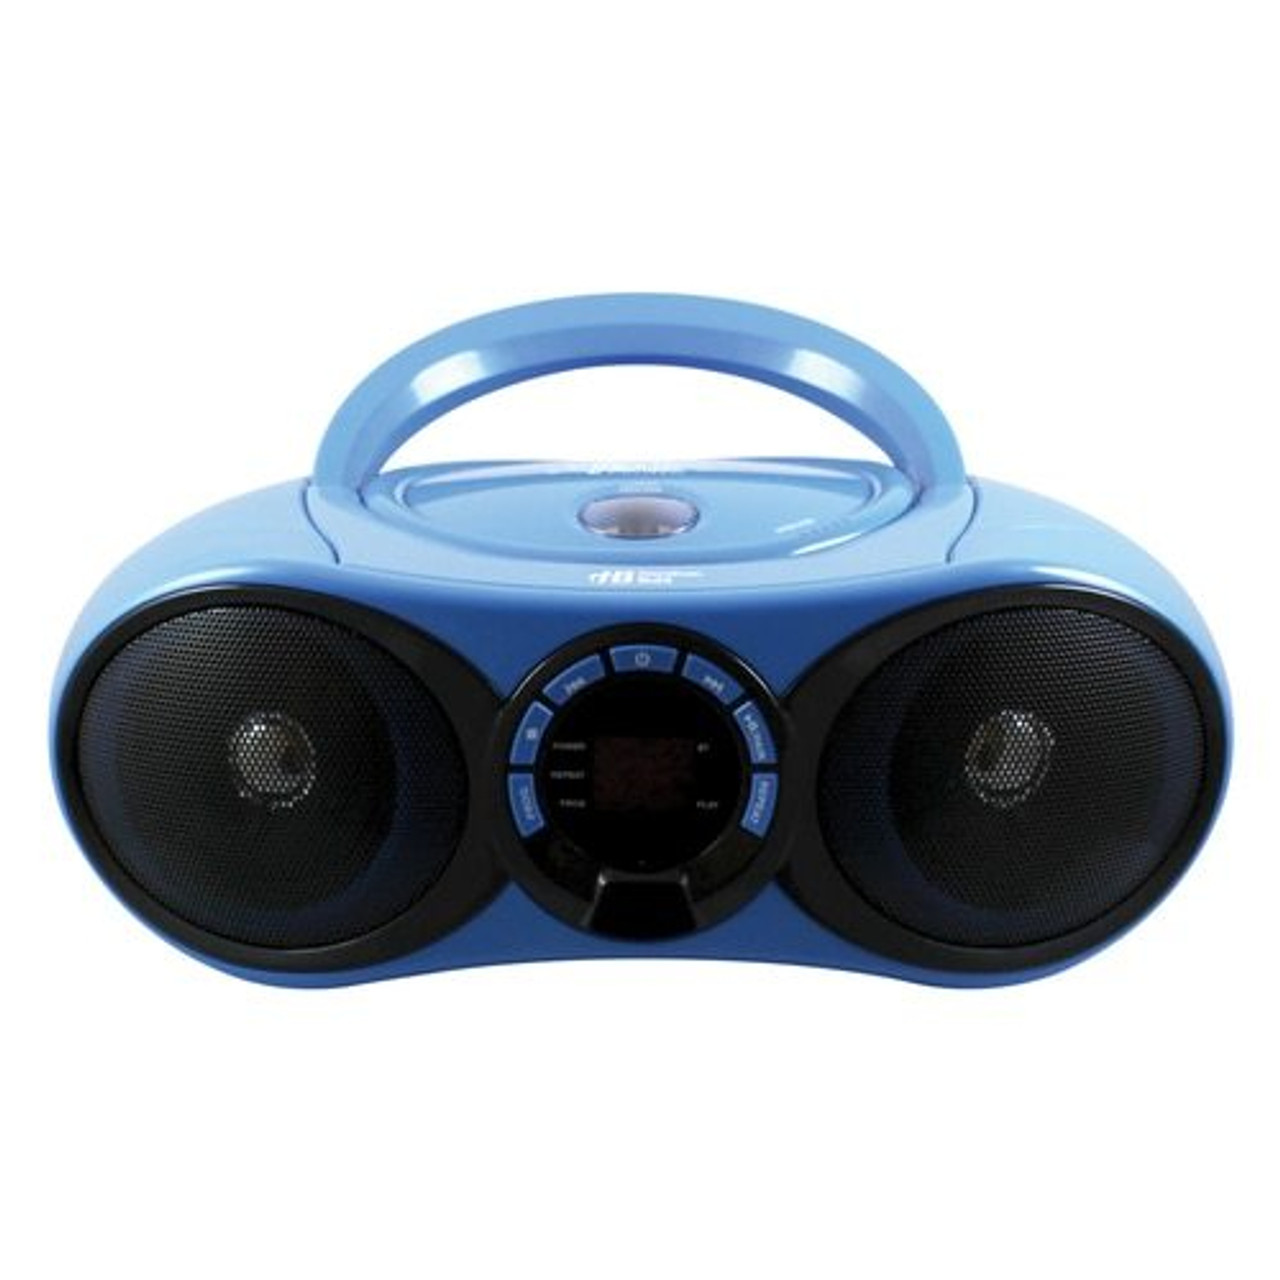 front of audiomvp boombox cd fm media player with bluetooth receiver [ 1280 x 1280 Pixel ]